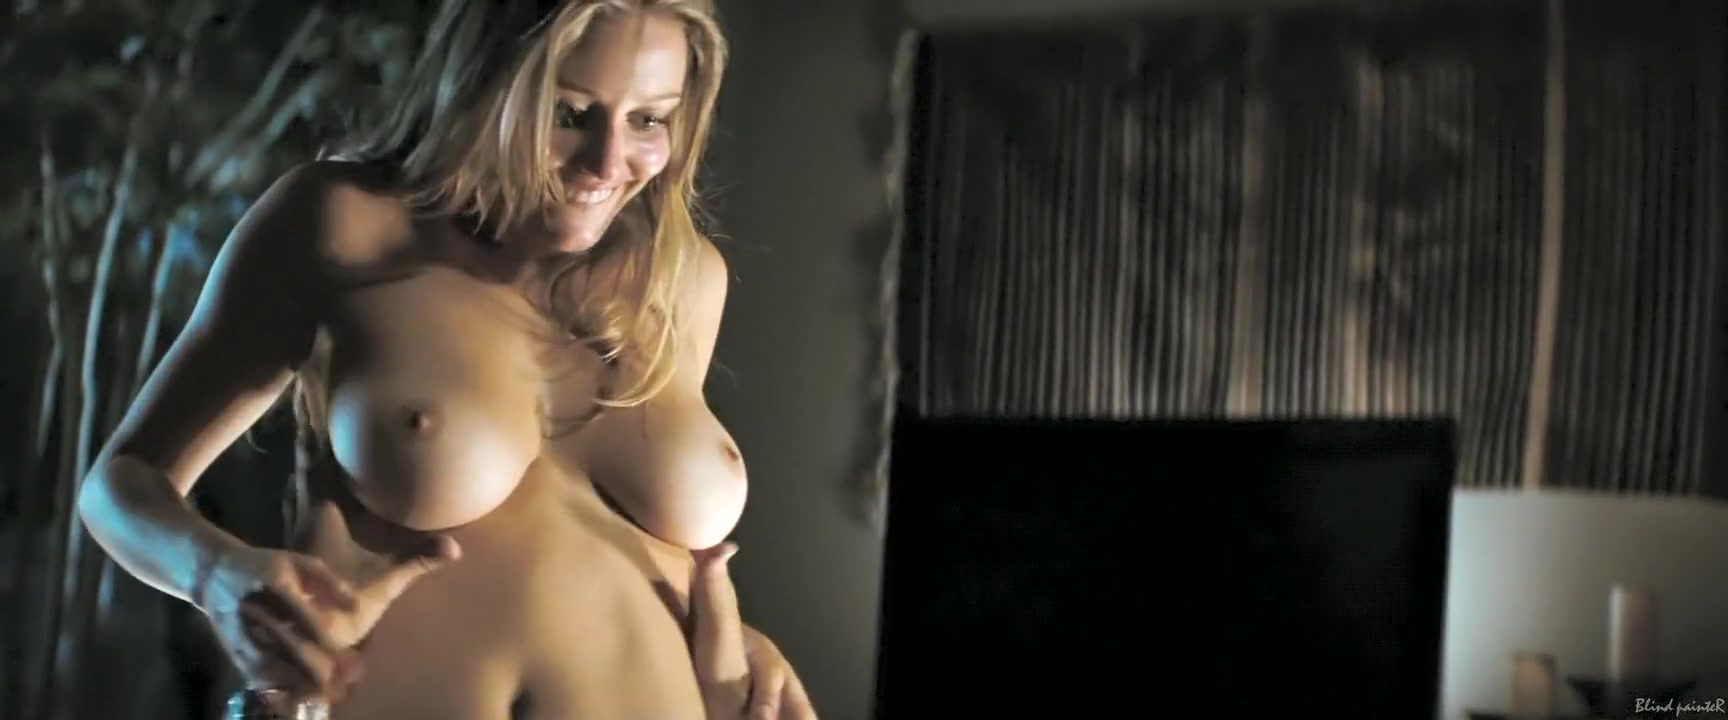 Porn tube Zack ward wife sexual dysfunction